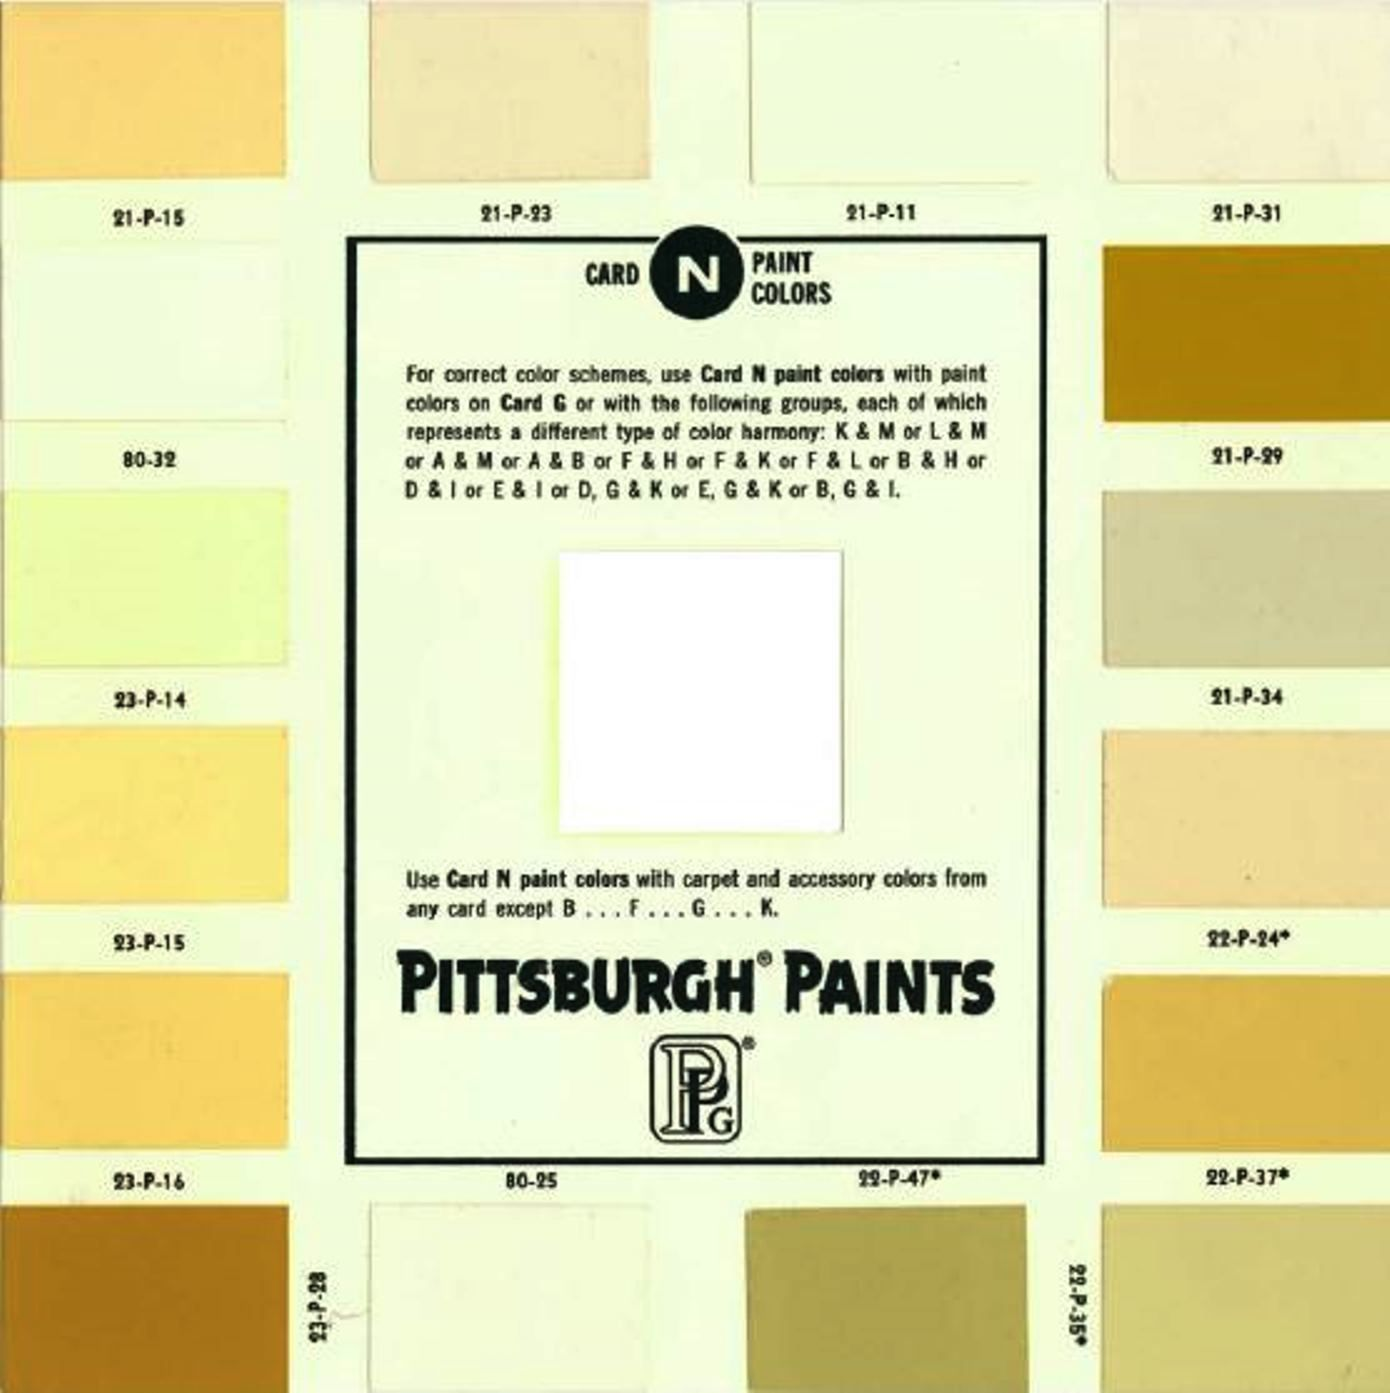 The snug is now a part of neutral palette ppg paint and neutral get style in pittsburgh paints color throwback pale pinks then now geenschuldenfo Images